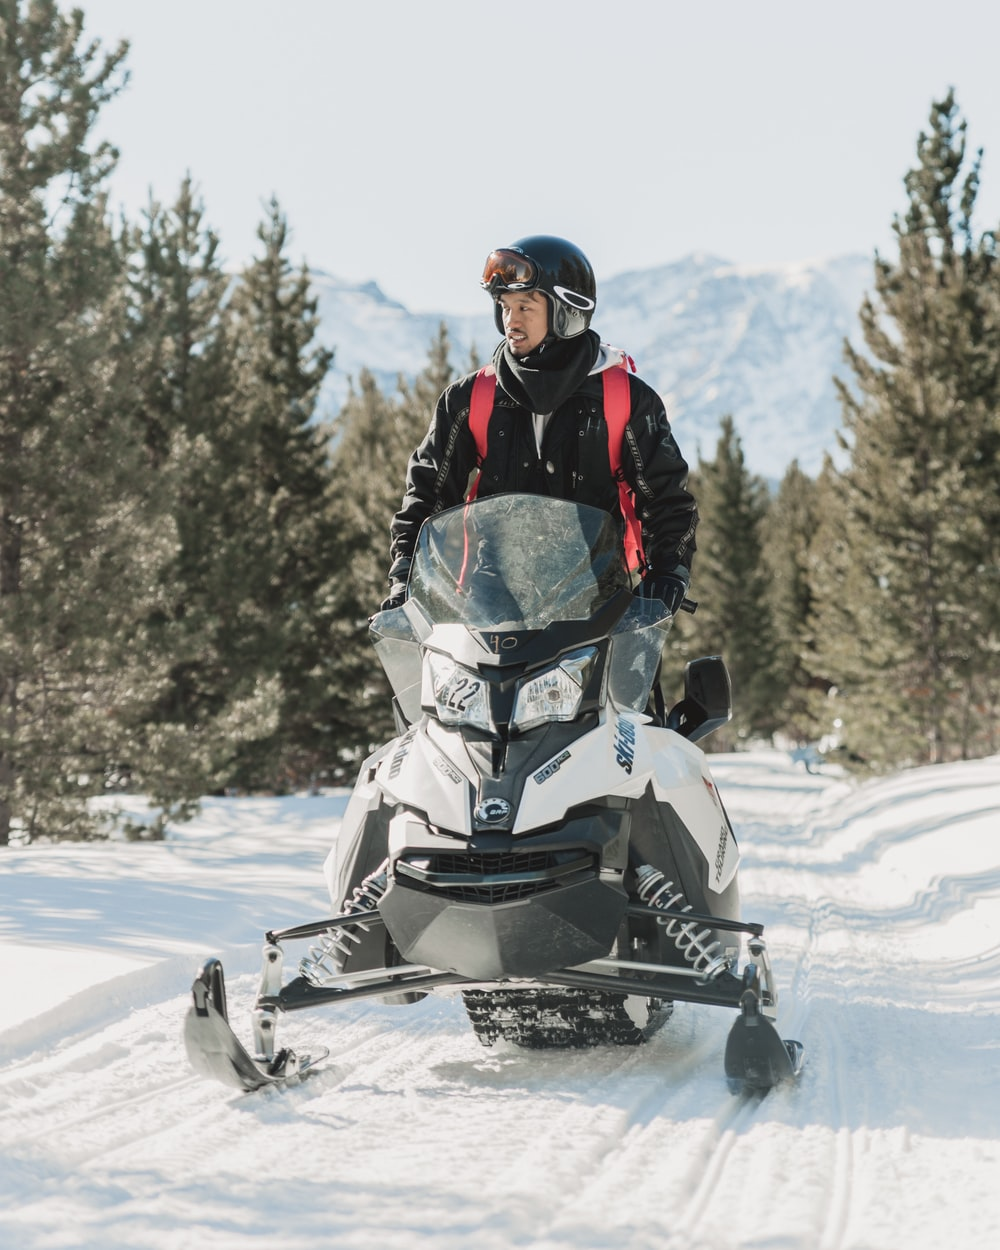 man in black winter jacket driving white snowmobile on snow-covered ground during daytime